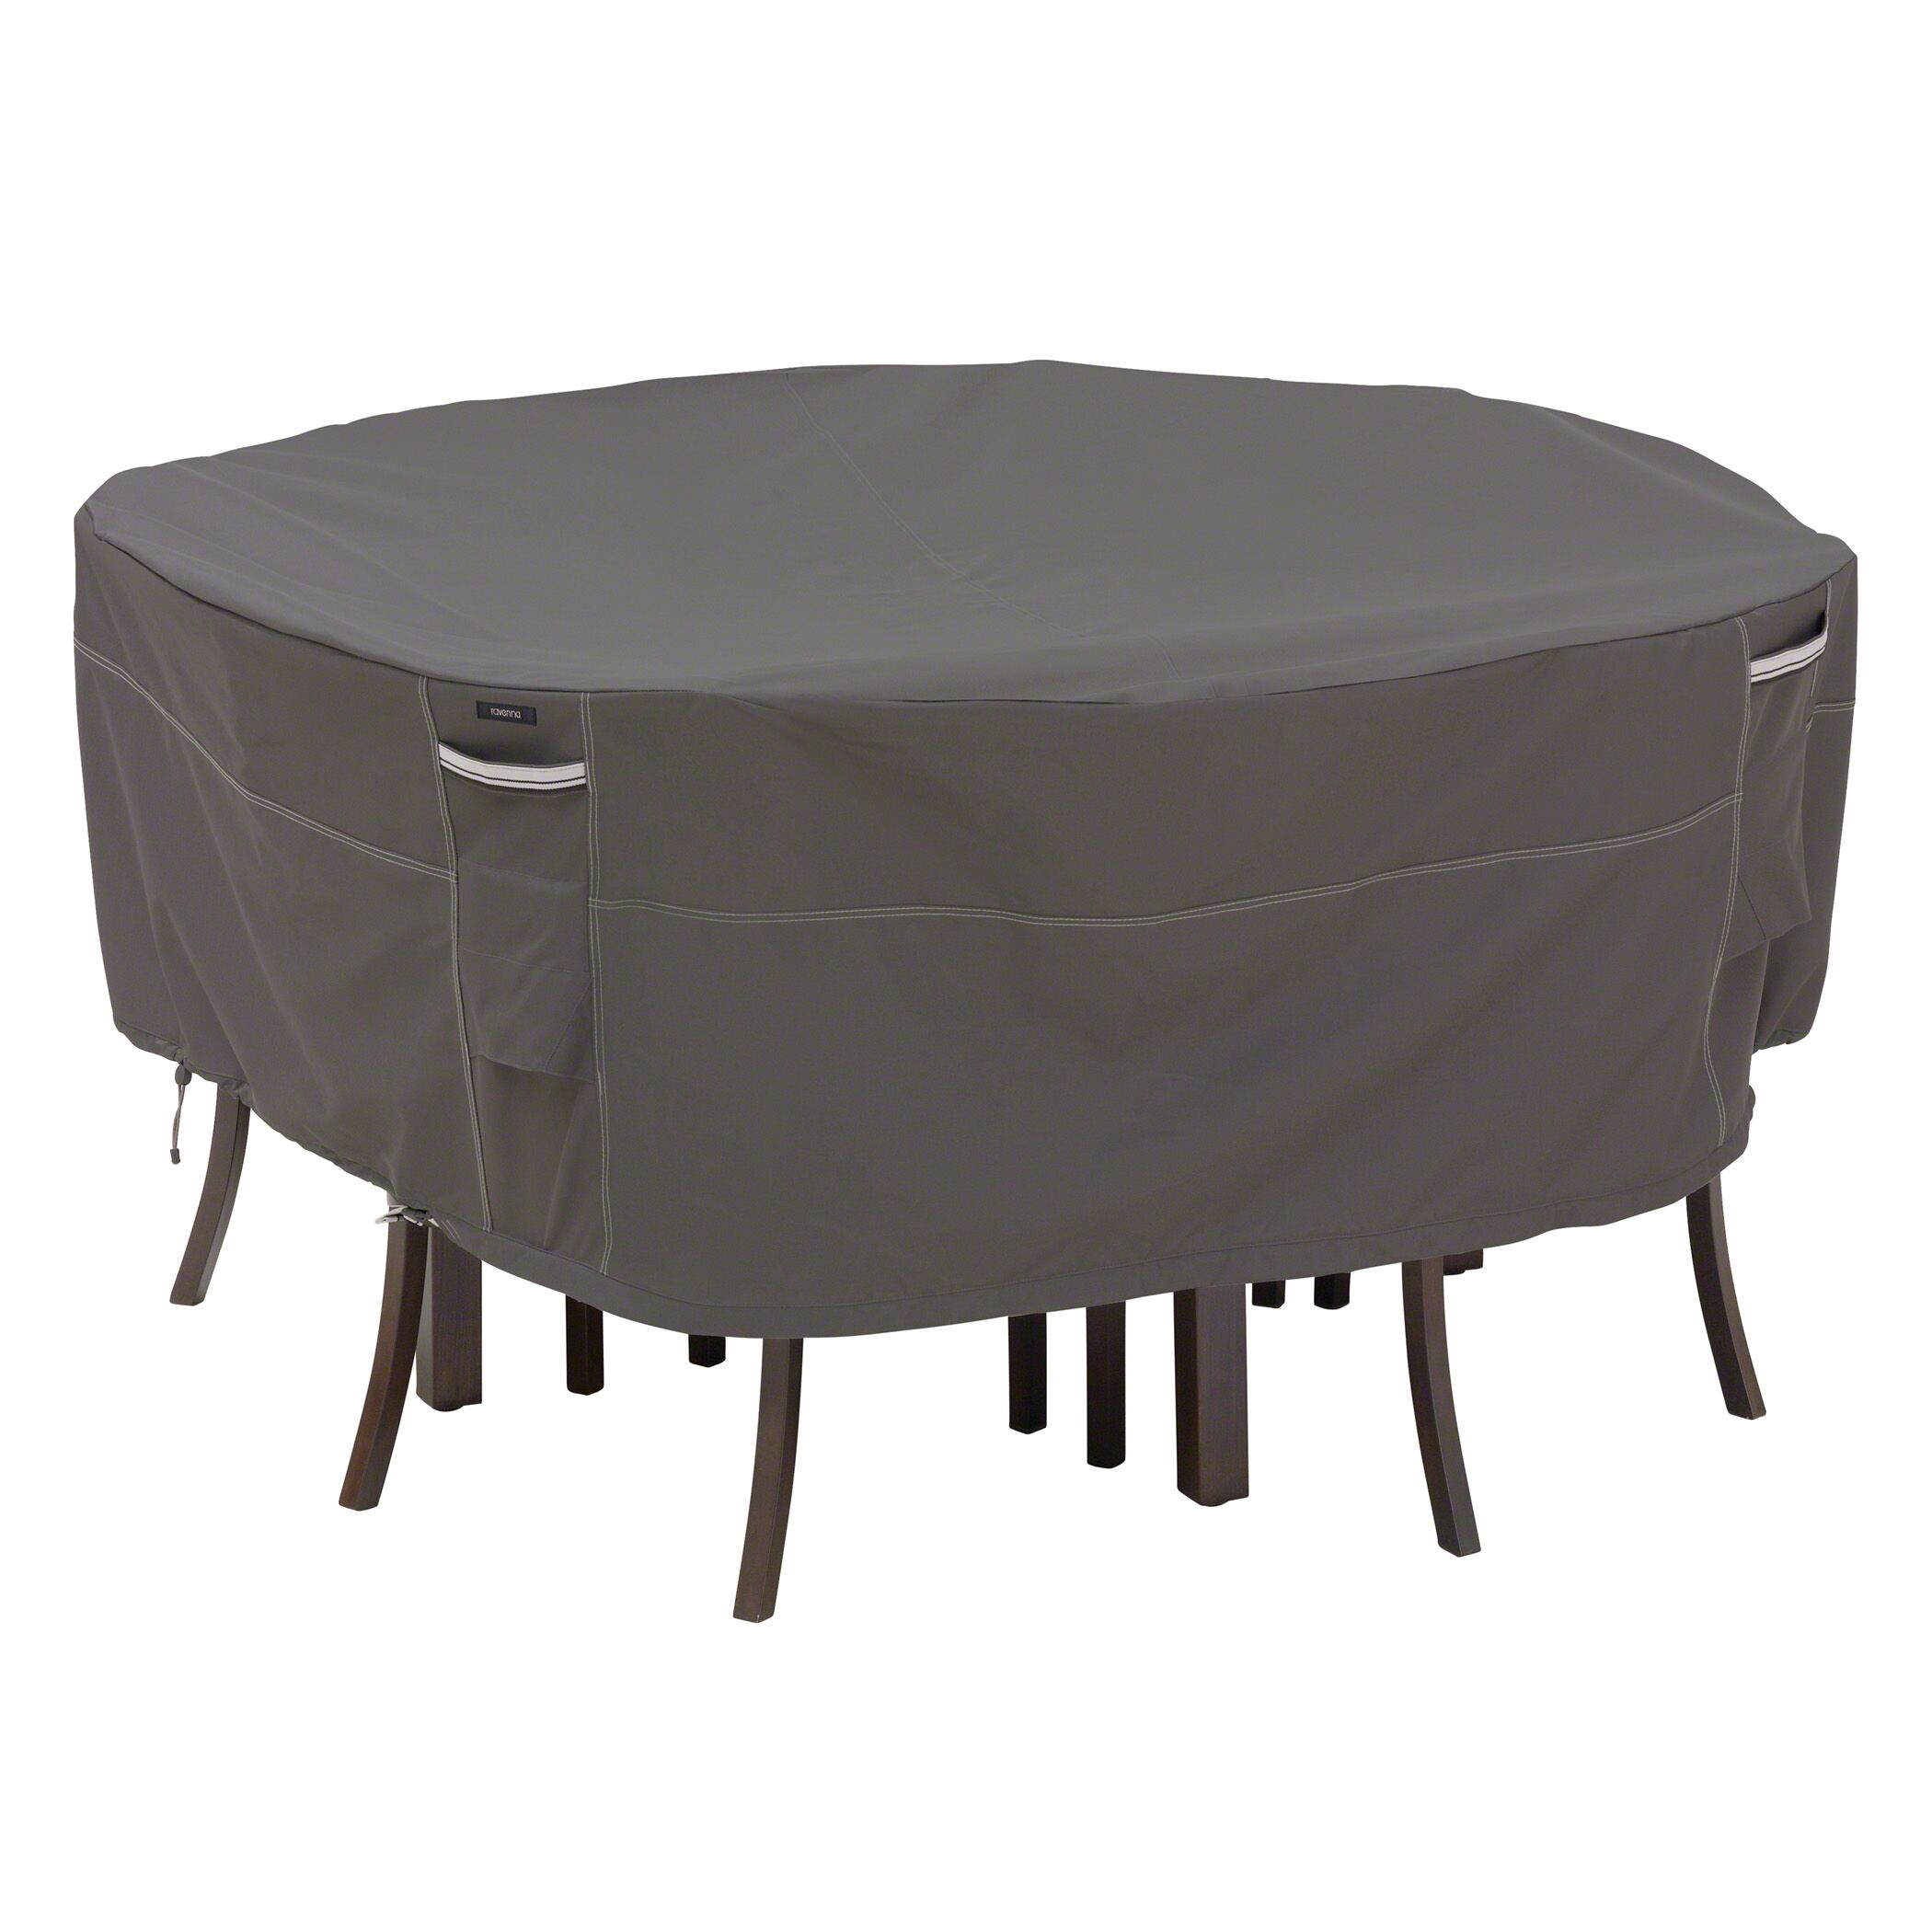 Round Patio Set Cover Size: Tall